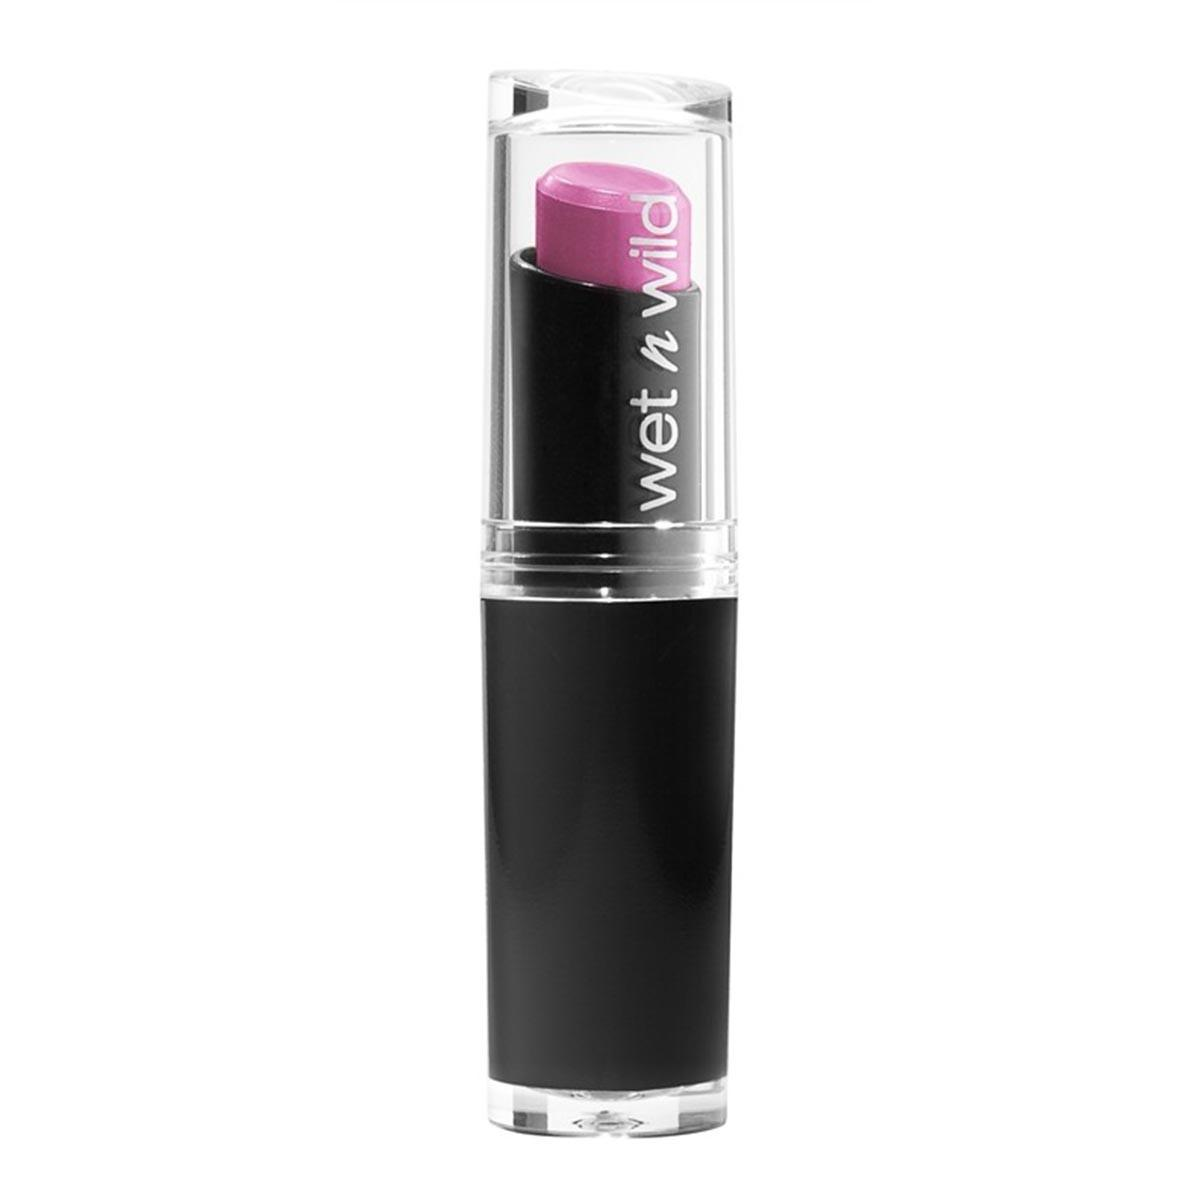 Wet n wild Megalast Lip Color Dollhouse Pink